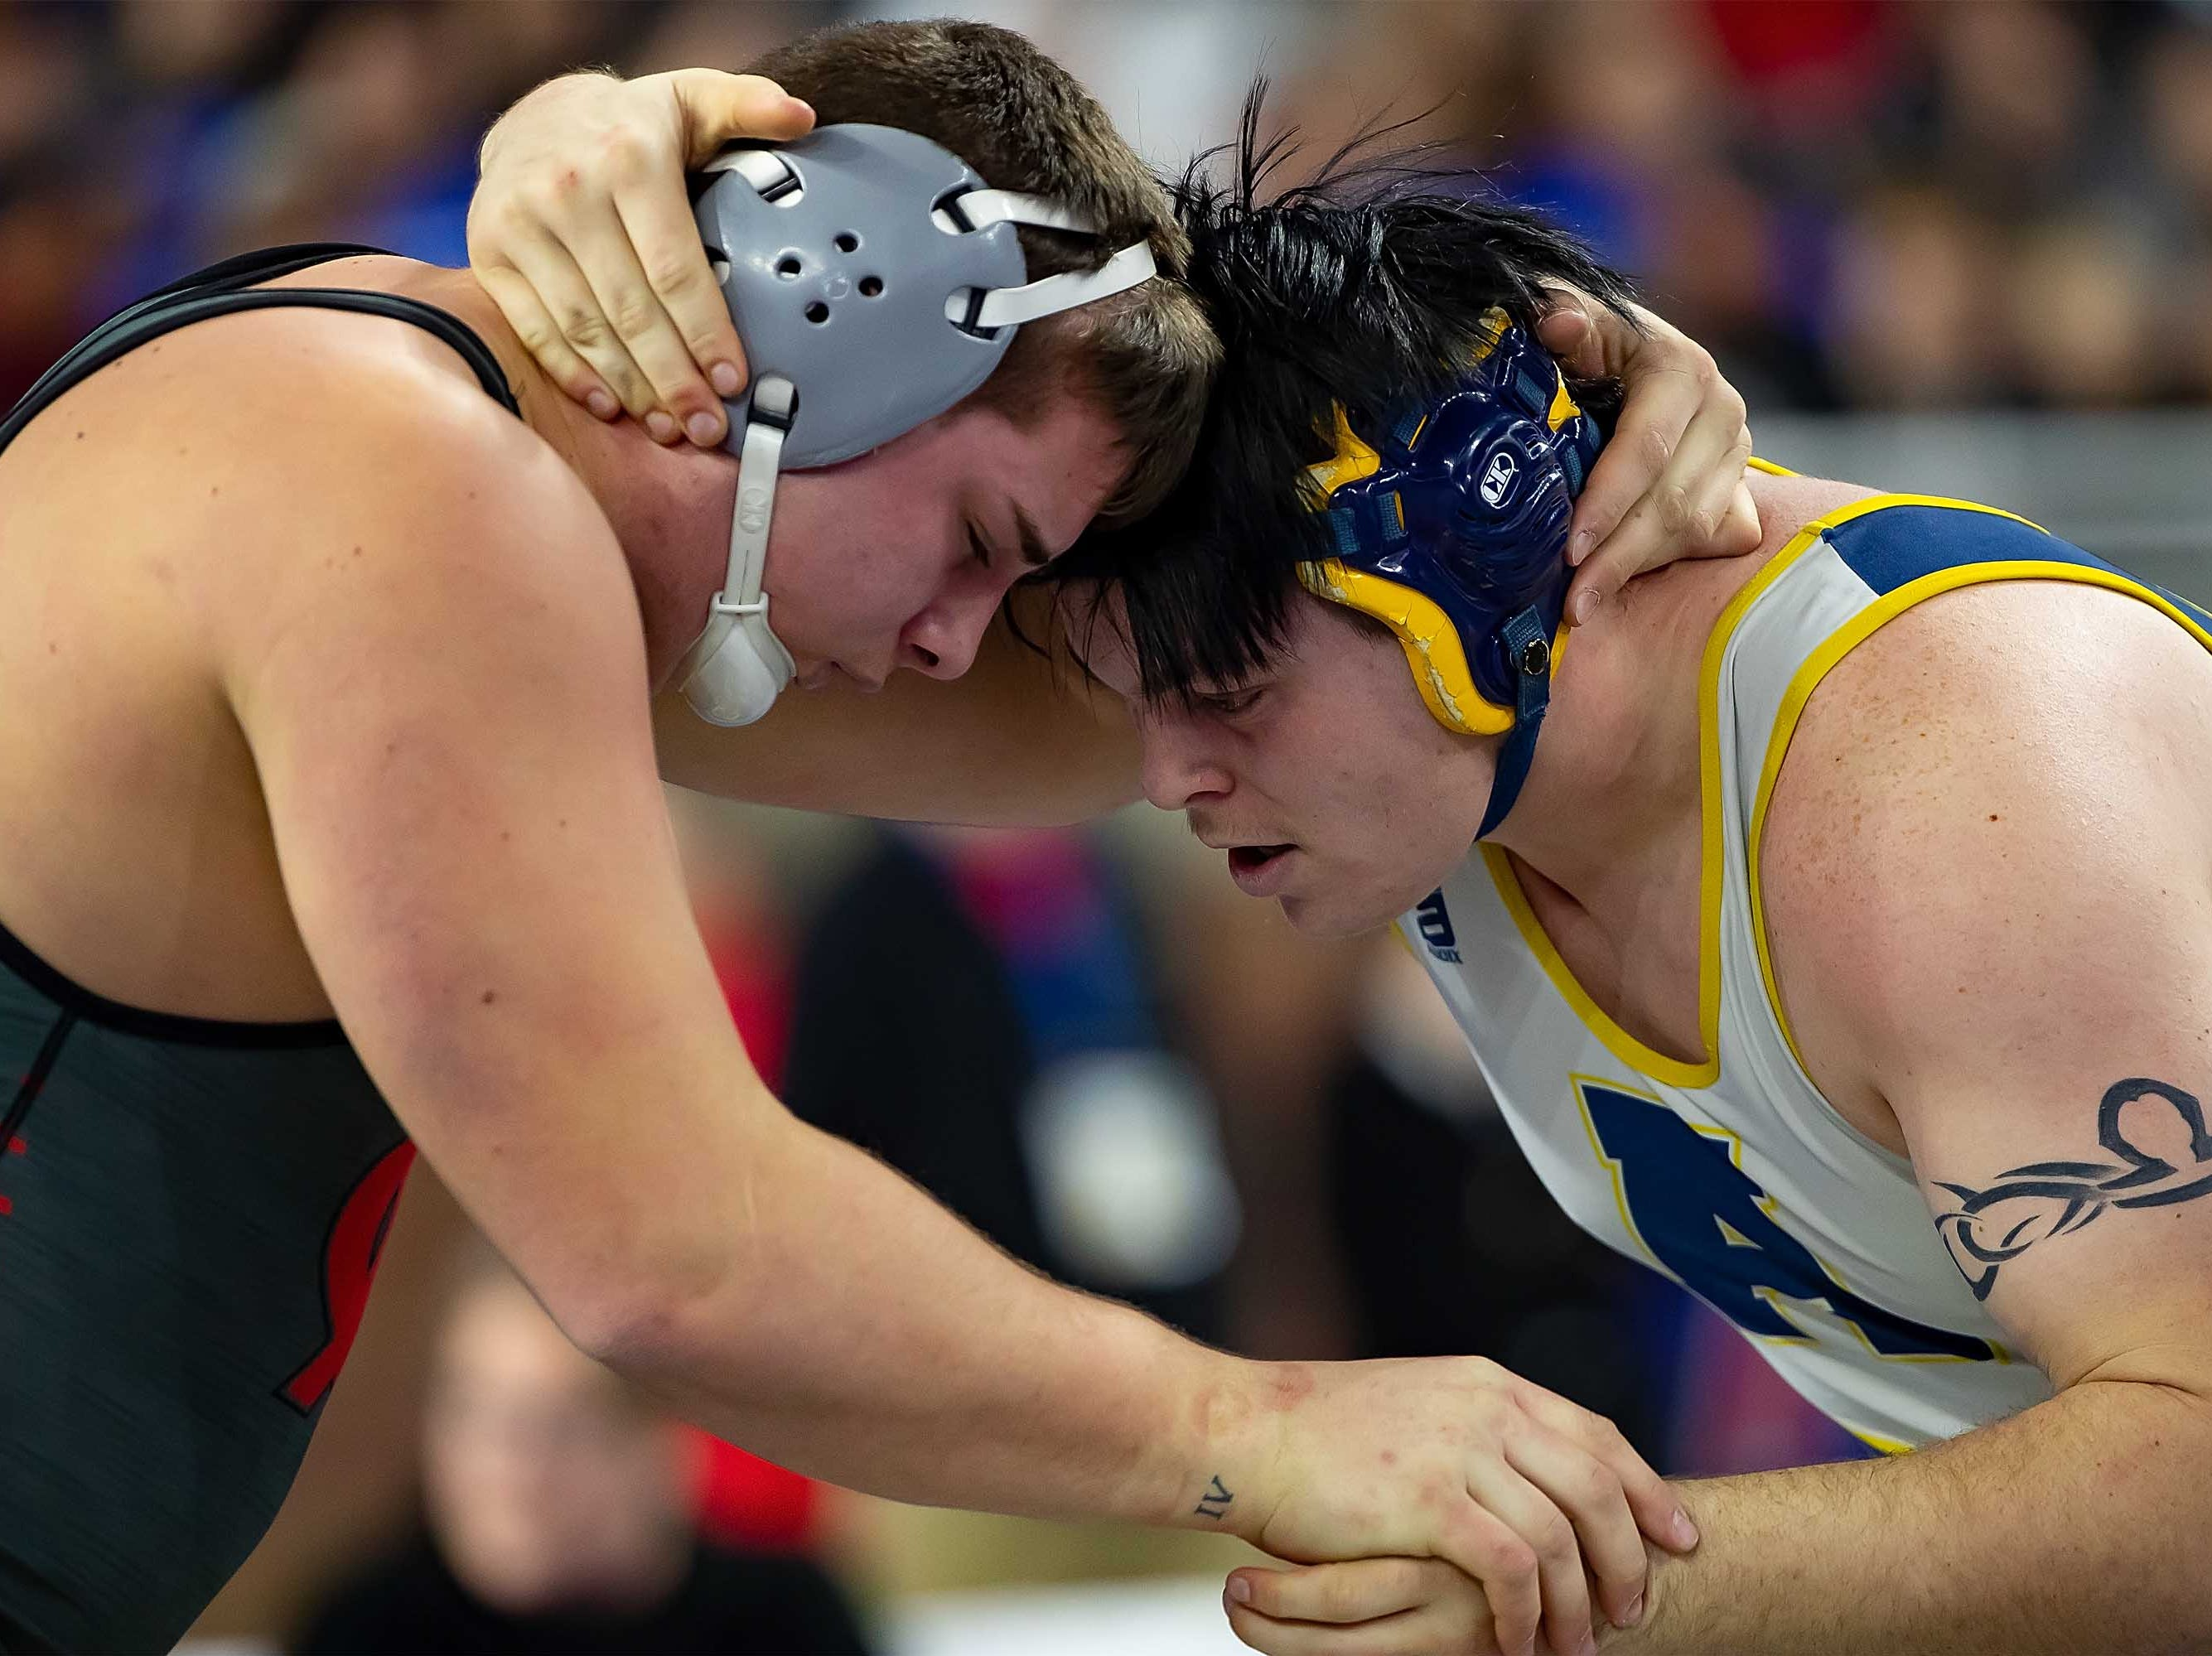 Mike Nykoriak of Algonac, right, battles with Brock Kuhn of Michigan Center during their 285-pound Division 3 championship match.